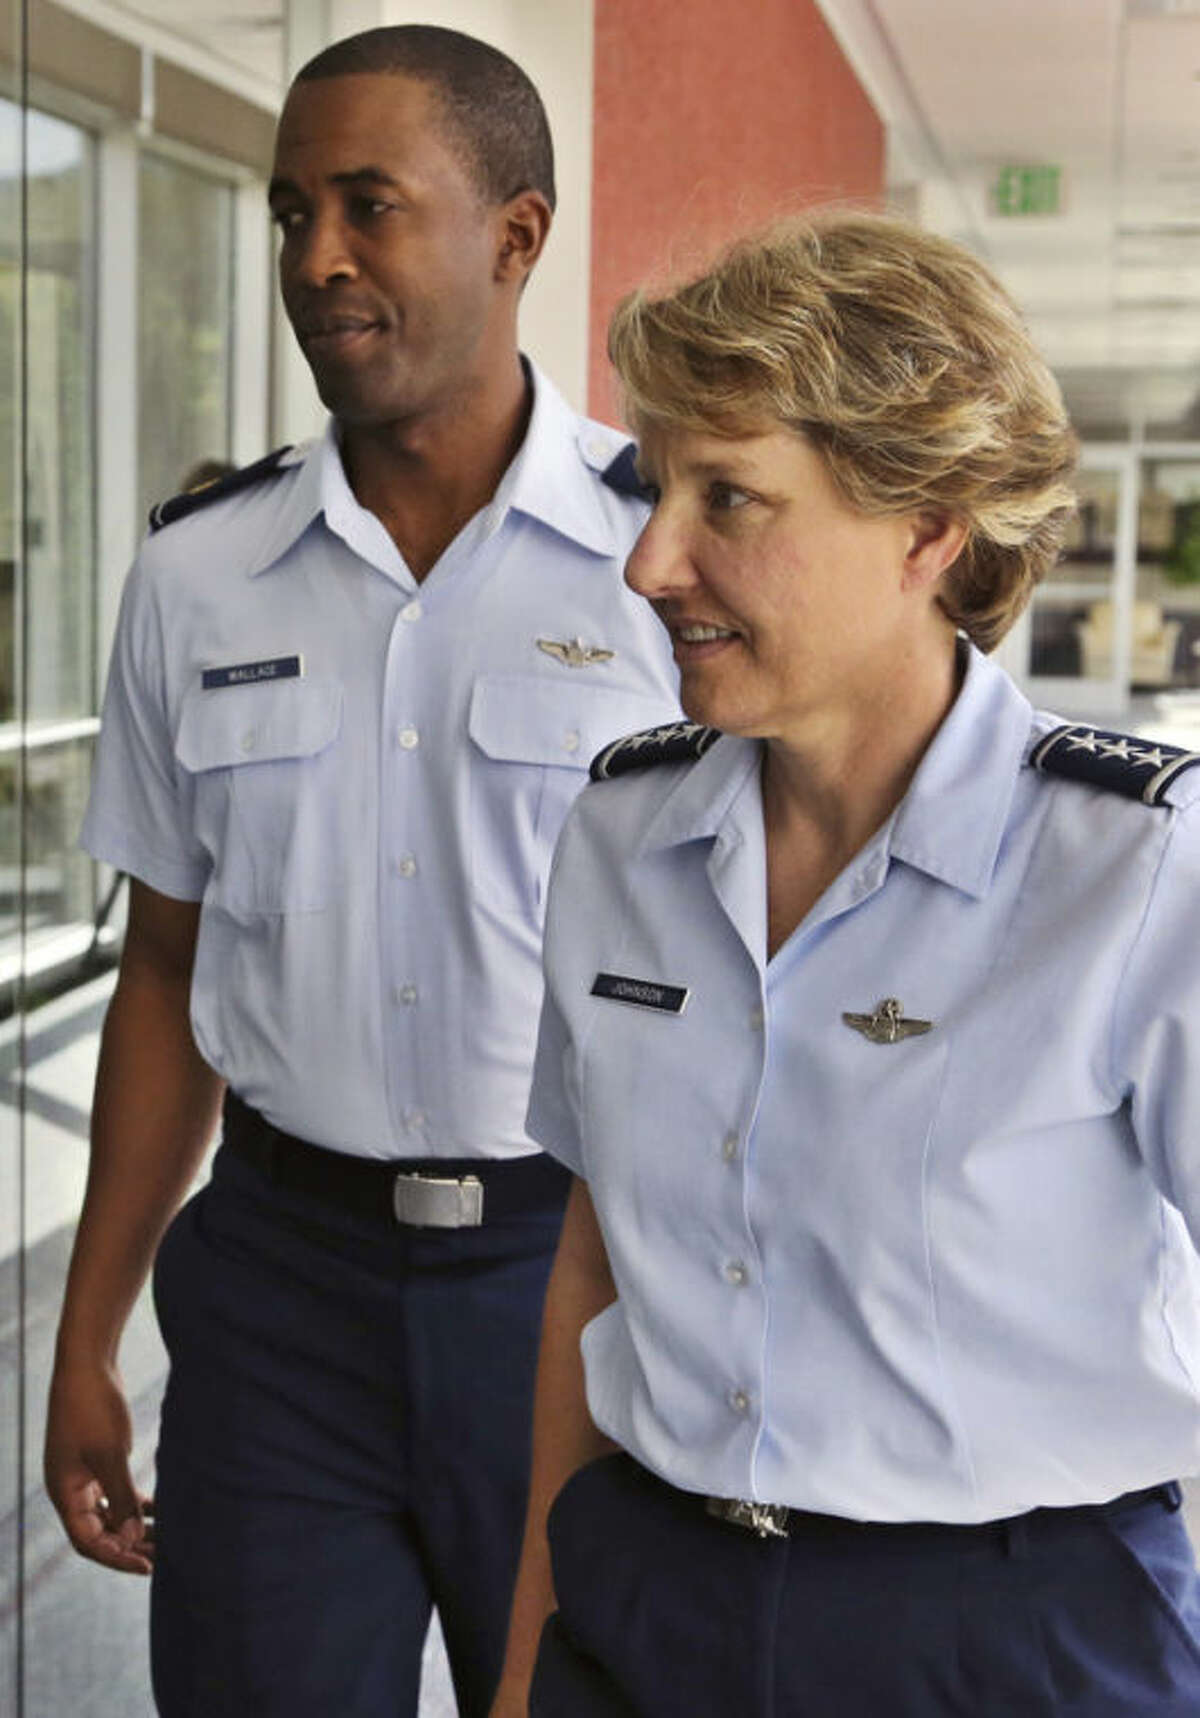 New U.S. Air Force Academy Superintendent Lt. Gen. Michelle Johnson, right, walks with her Executive Officer Major Lonzo Wallace, following an interview with The Associated Press, at Johnson's office at the Air Force Academy, near Colorado Springs, Colo., Tuesday Aug. 27, 2013. Johnson, herself an Air Force Academy graduate who has served as a career Air Force officer and pilot, is the first female superintendent of a major U.S. service academy. (AP Photo/Brennan Linsley)